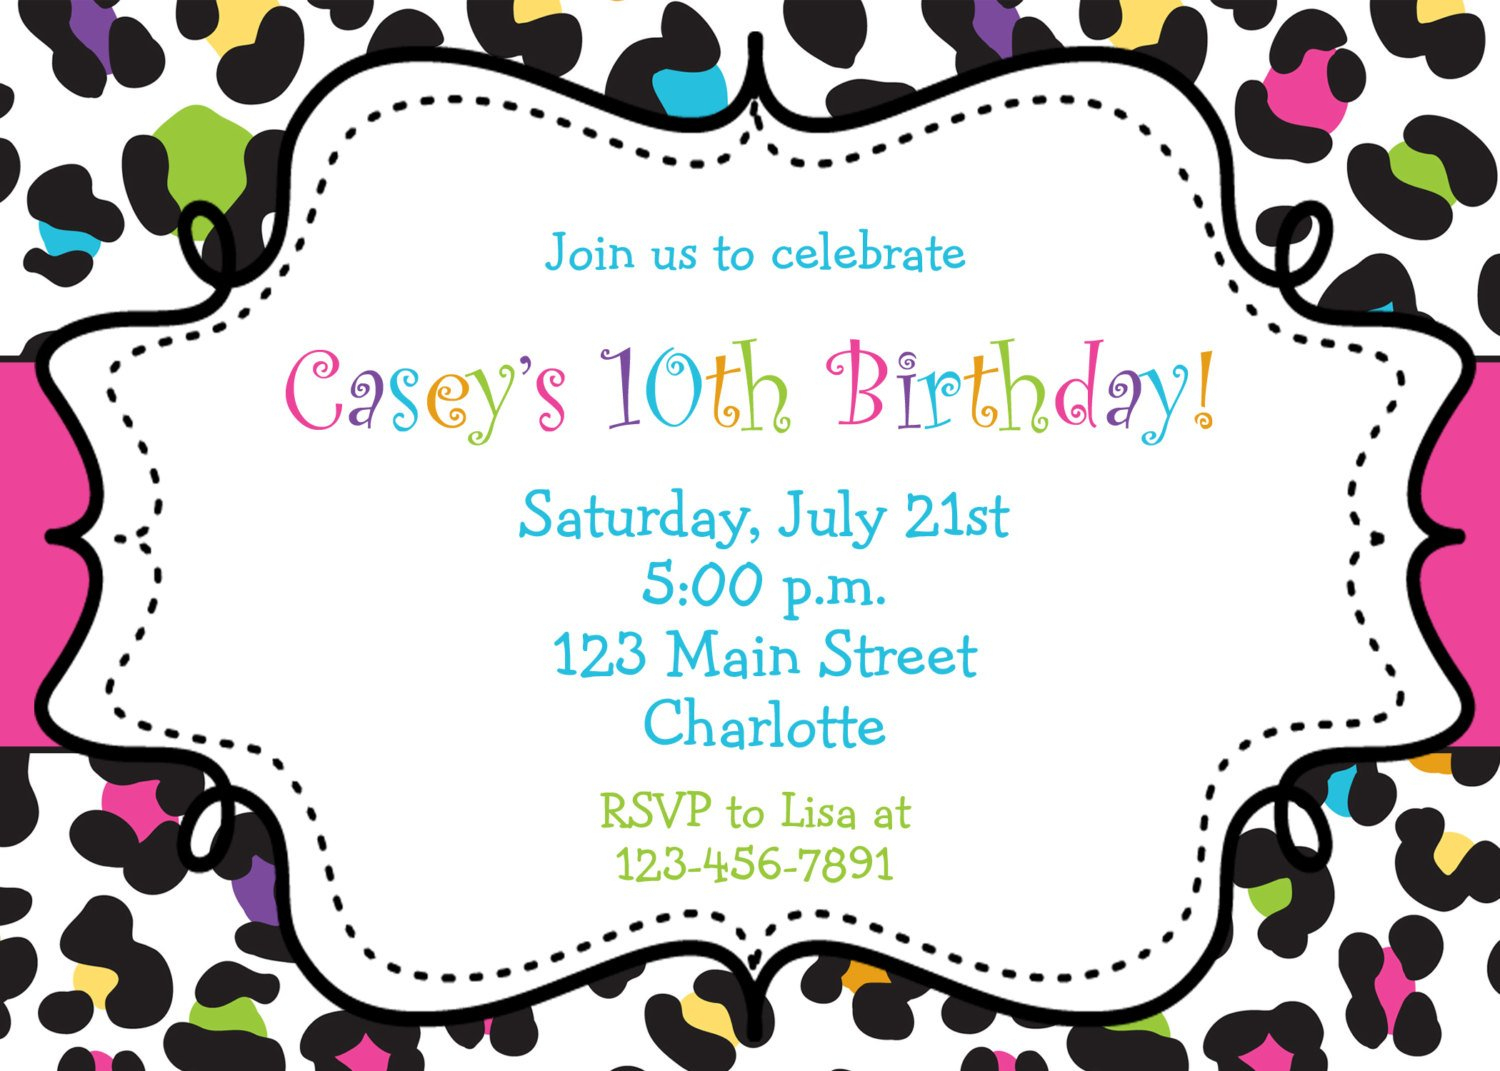 Rainbow Cheetah Girls Birthday Party Invitation Printable | Etsy - Free Printable Cheetah Birthday Invitations